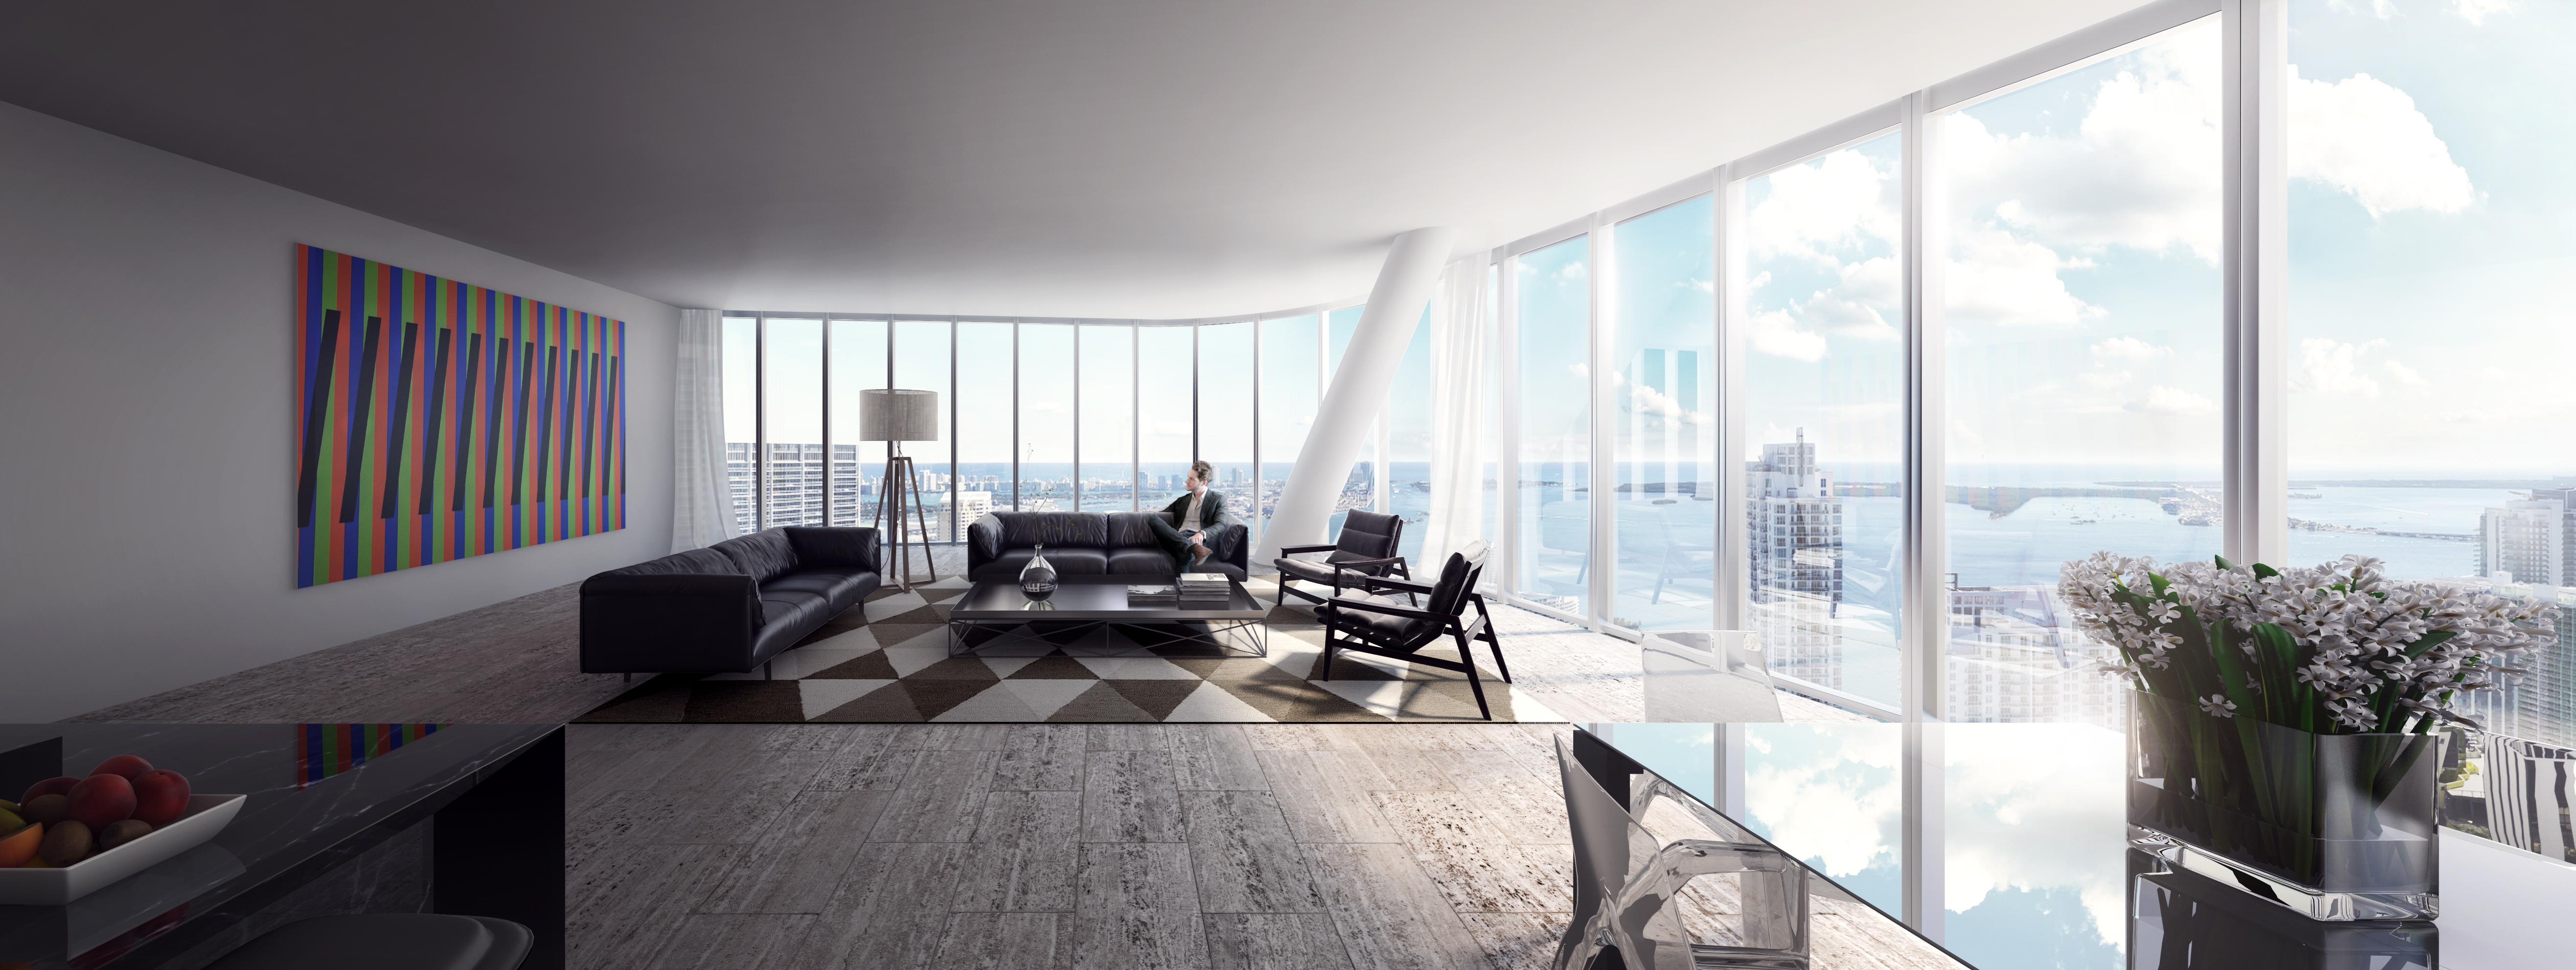 SLS Lux - Residential High Rise. Miami, FL, United States By Related ...